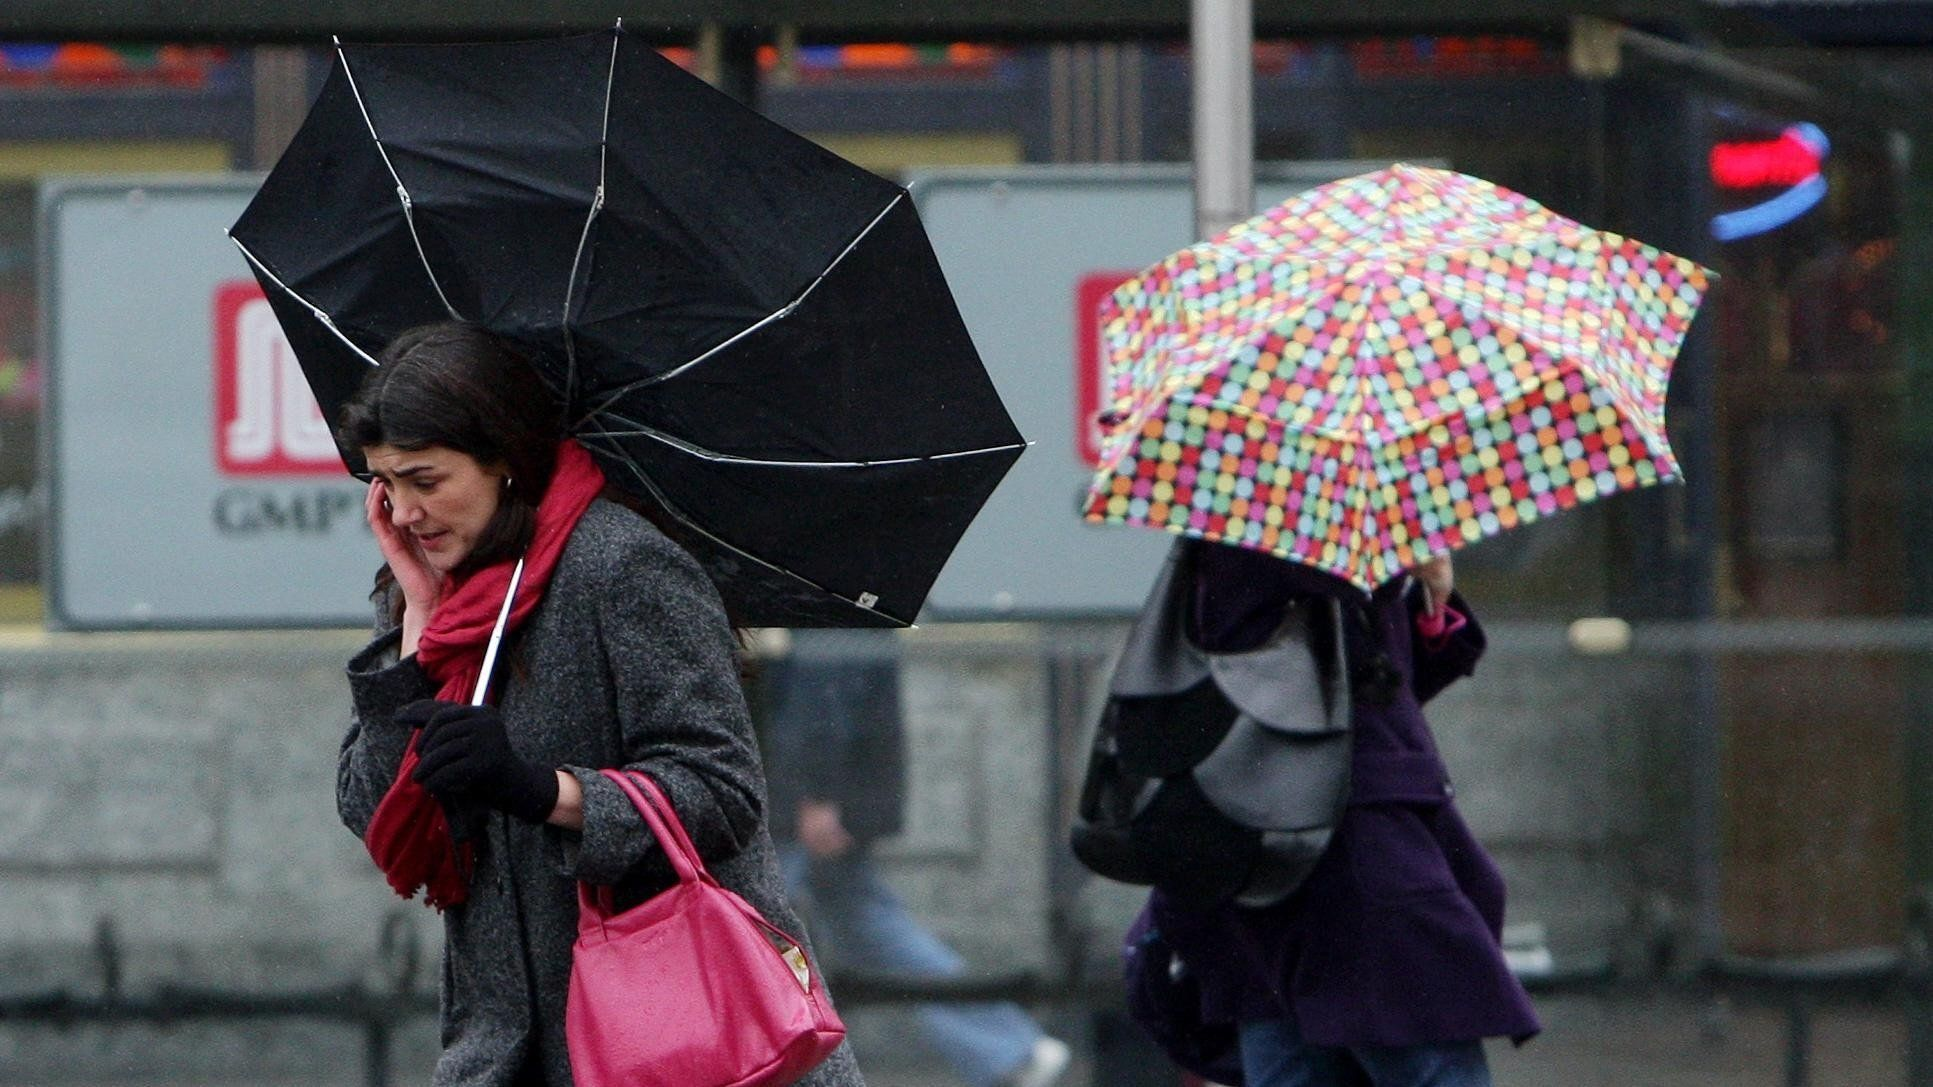 Weather warning for snow and ice to continue into Monday